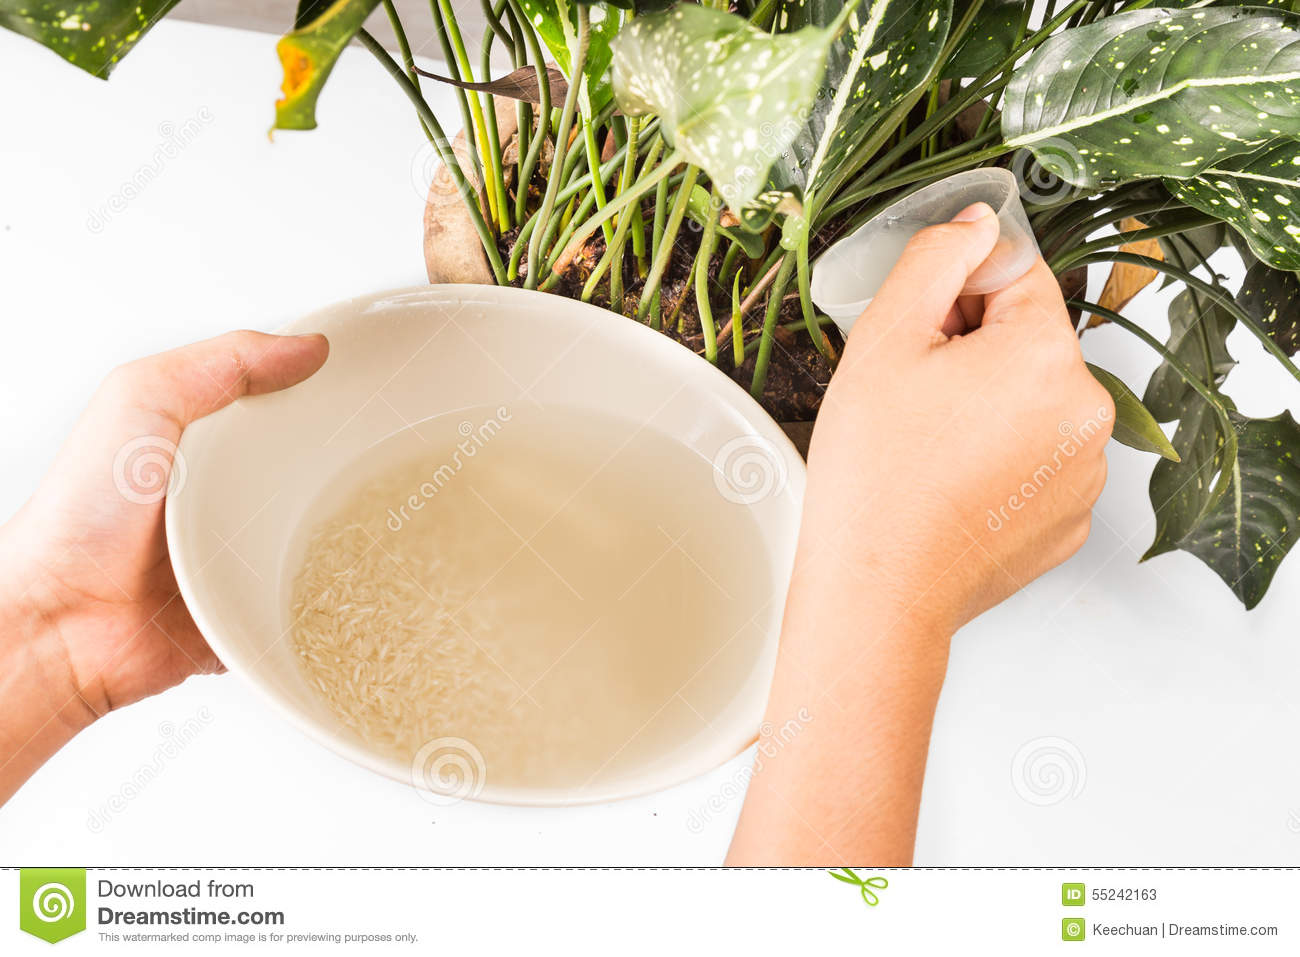 Water from rice rinse being used as natural fertilizer on potted plant